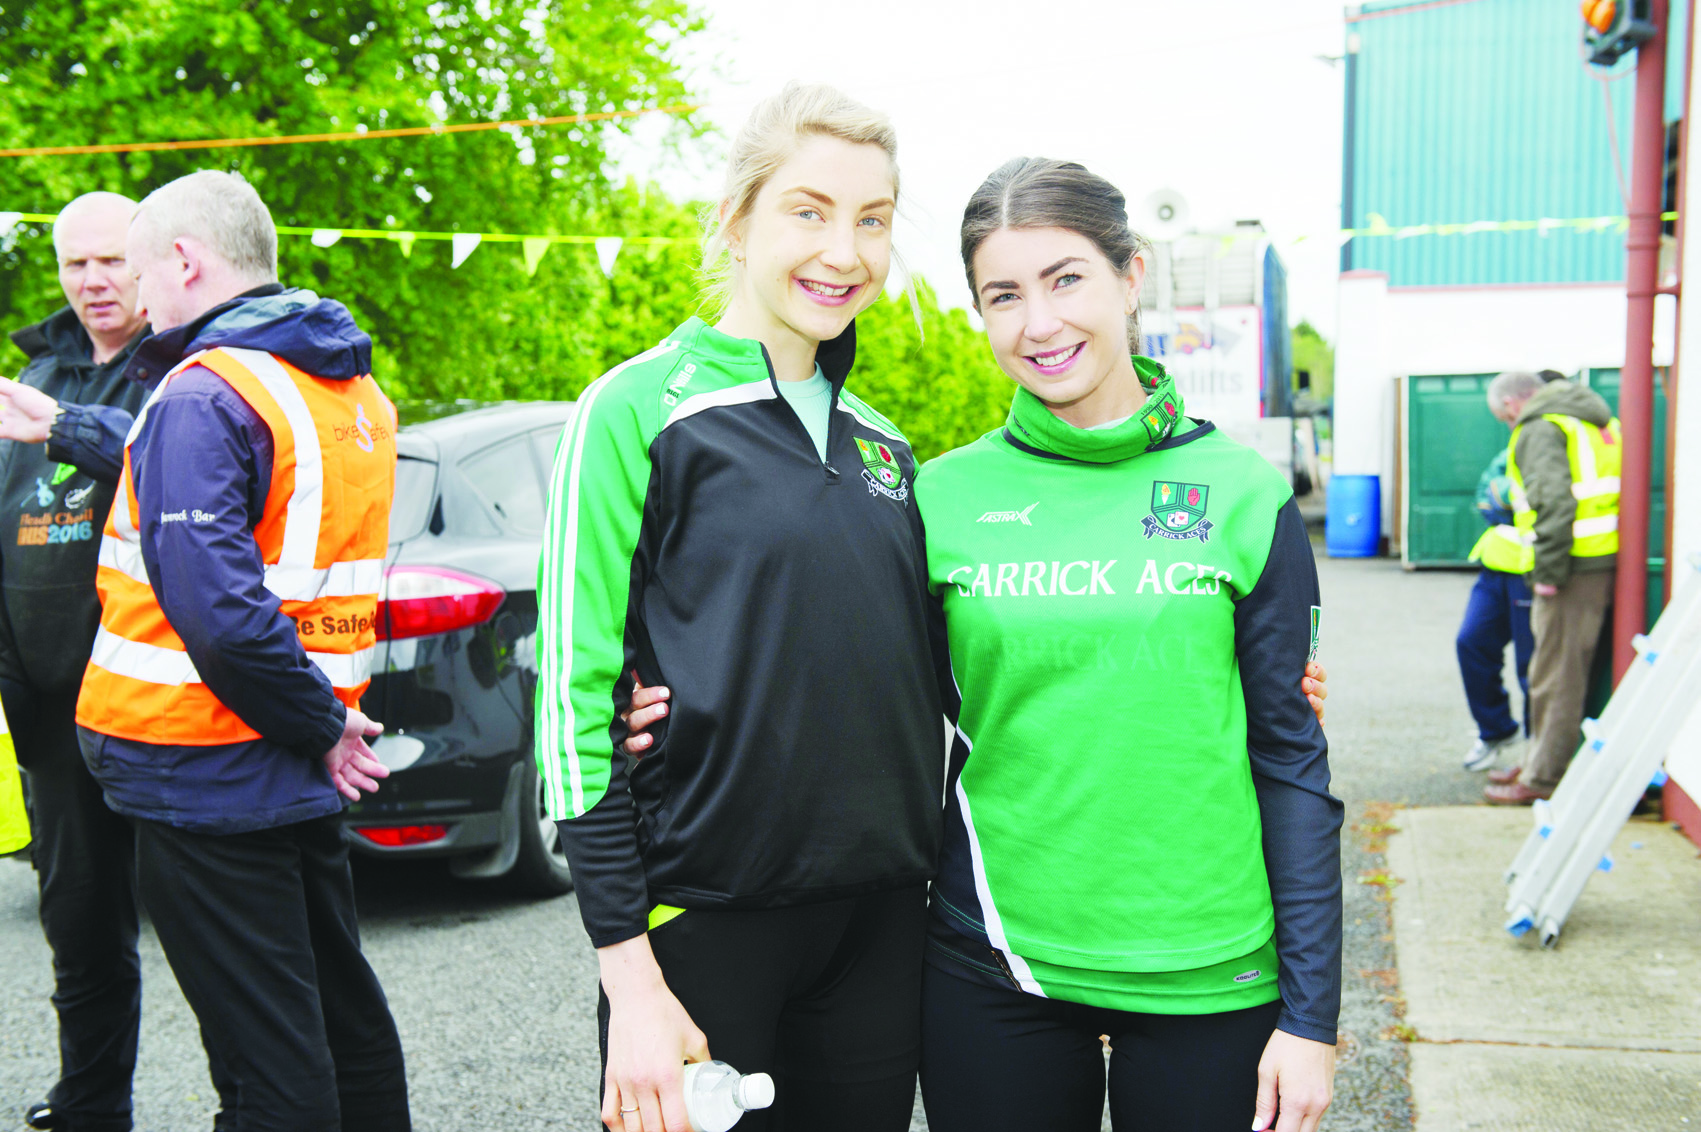 At the Blackwater 10k were (L-R) Anne Linden and Eilis Linden from Carrick Aces. ©Rory Geary/The Northern Standard